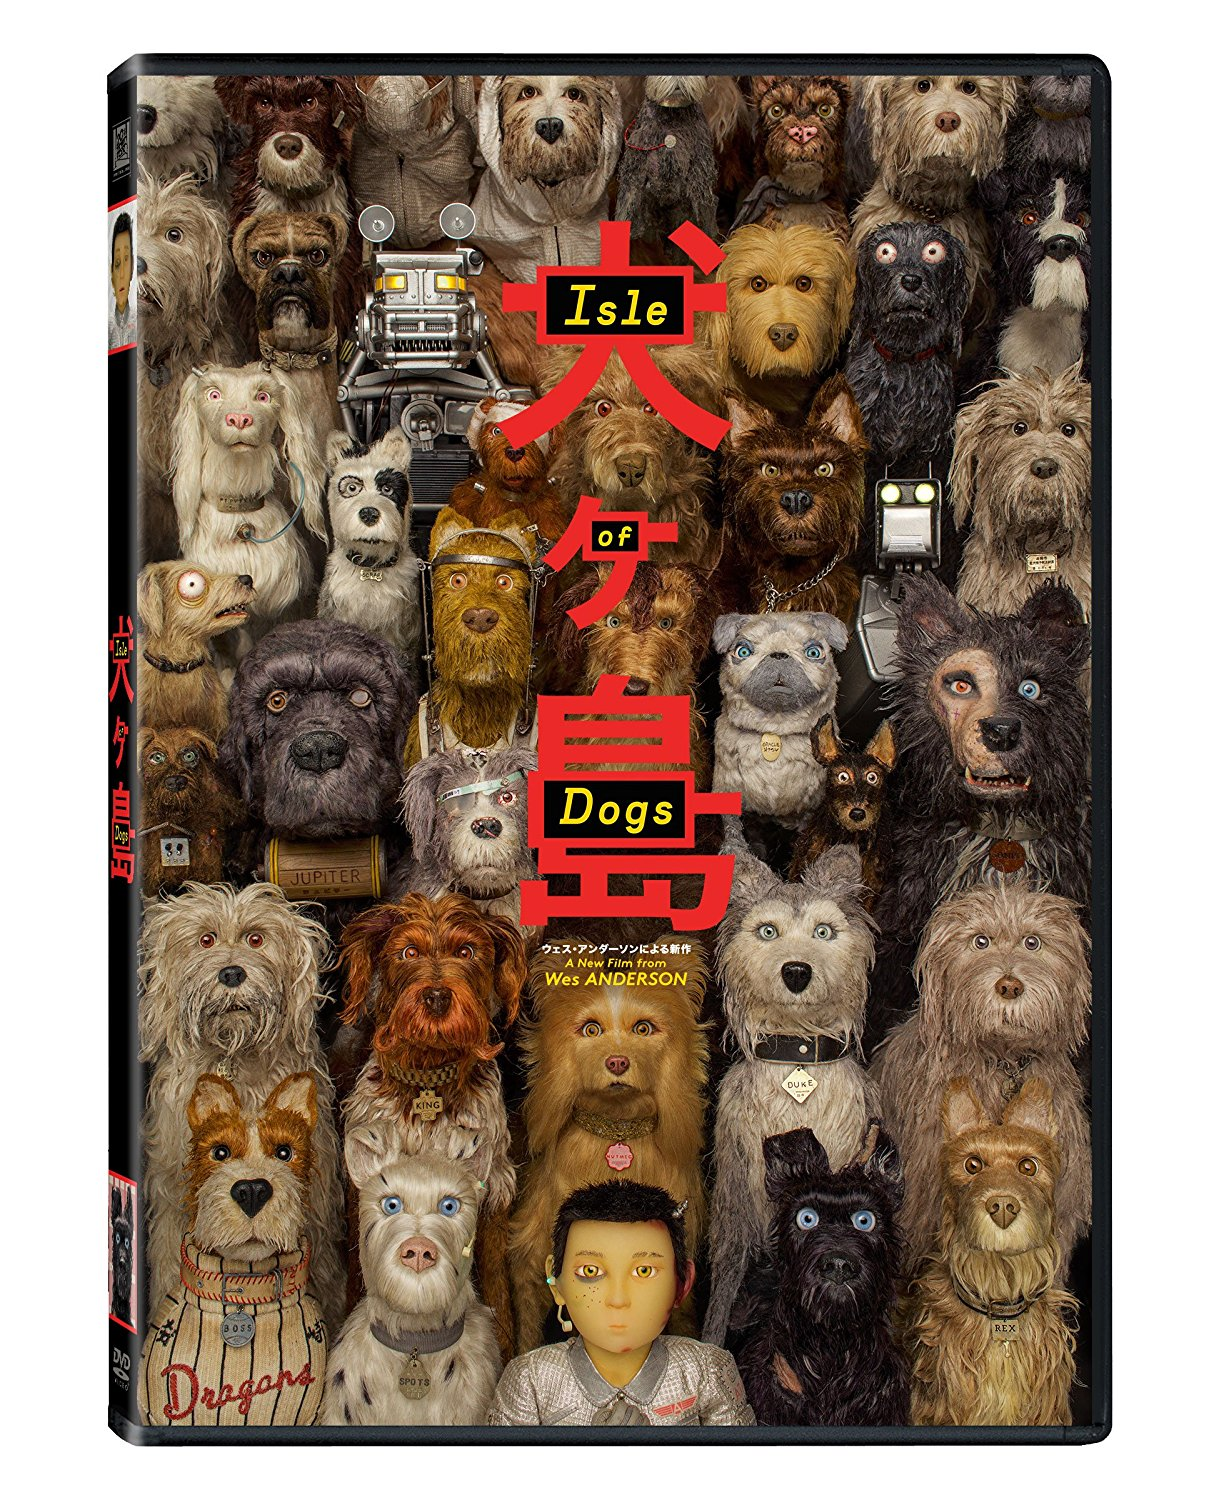 A bunch of dogs surround a human boy, all looking at the viewer.